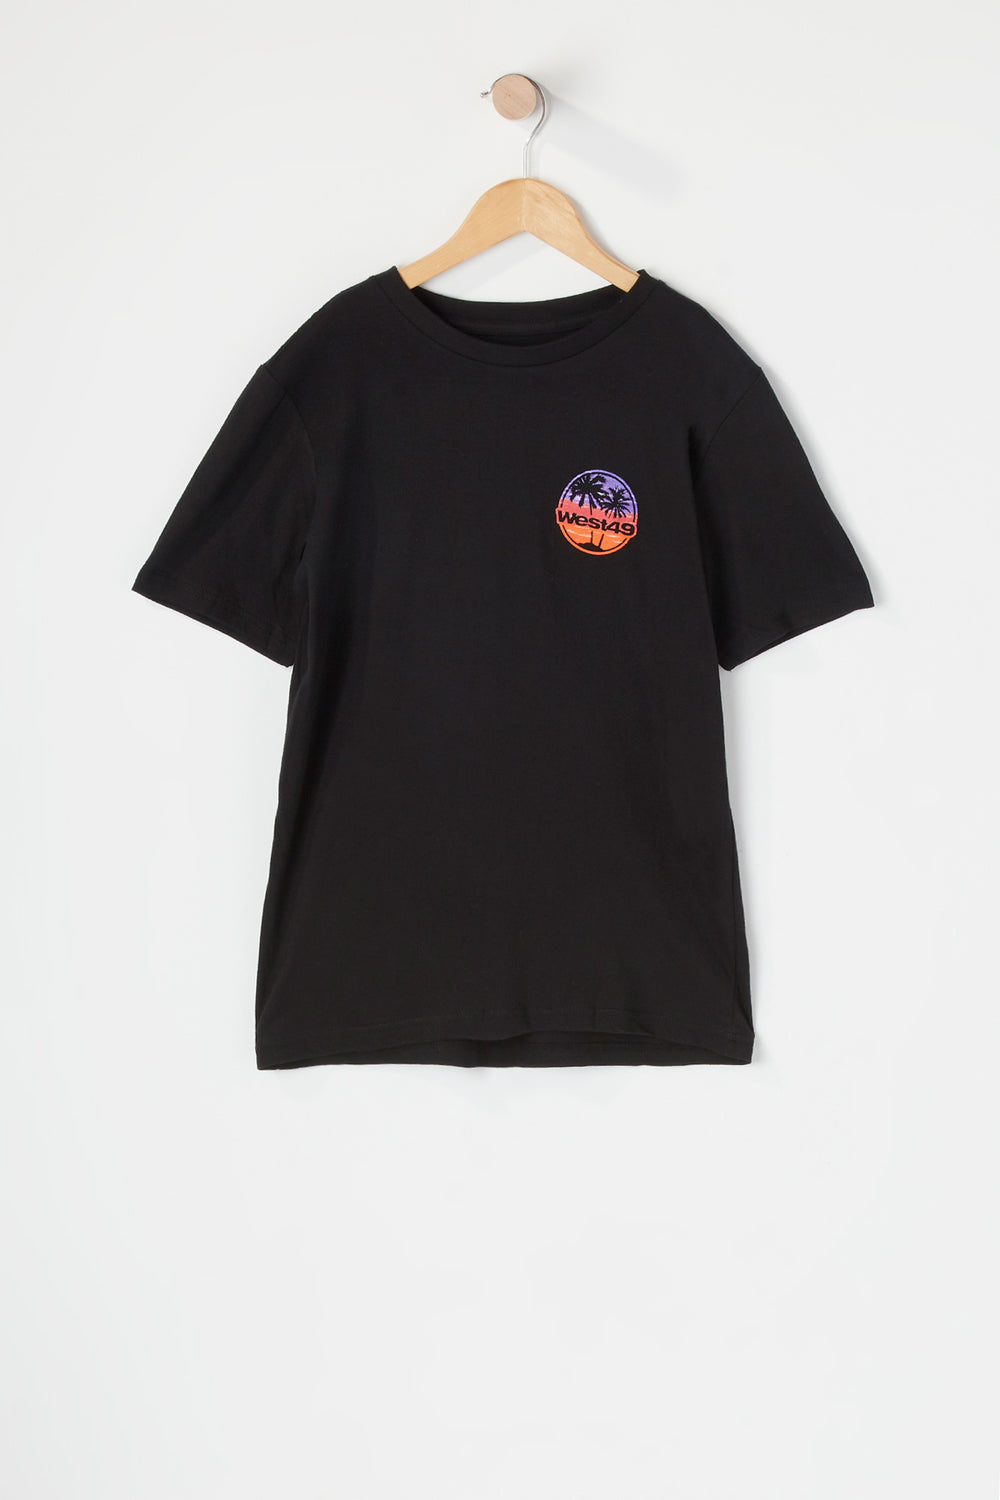 West49 Youth Sunset T-Shirt Black